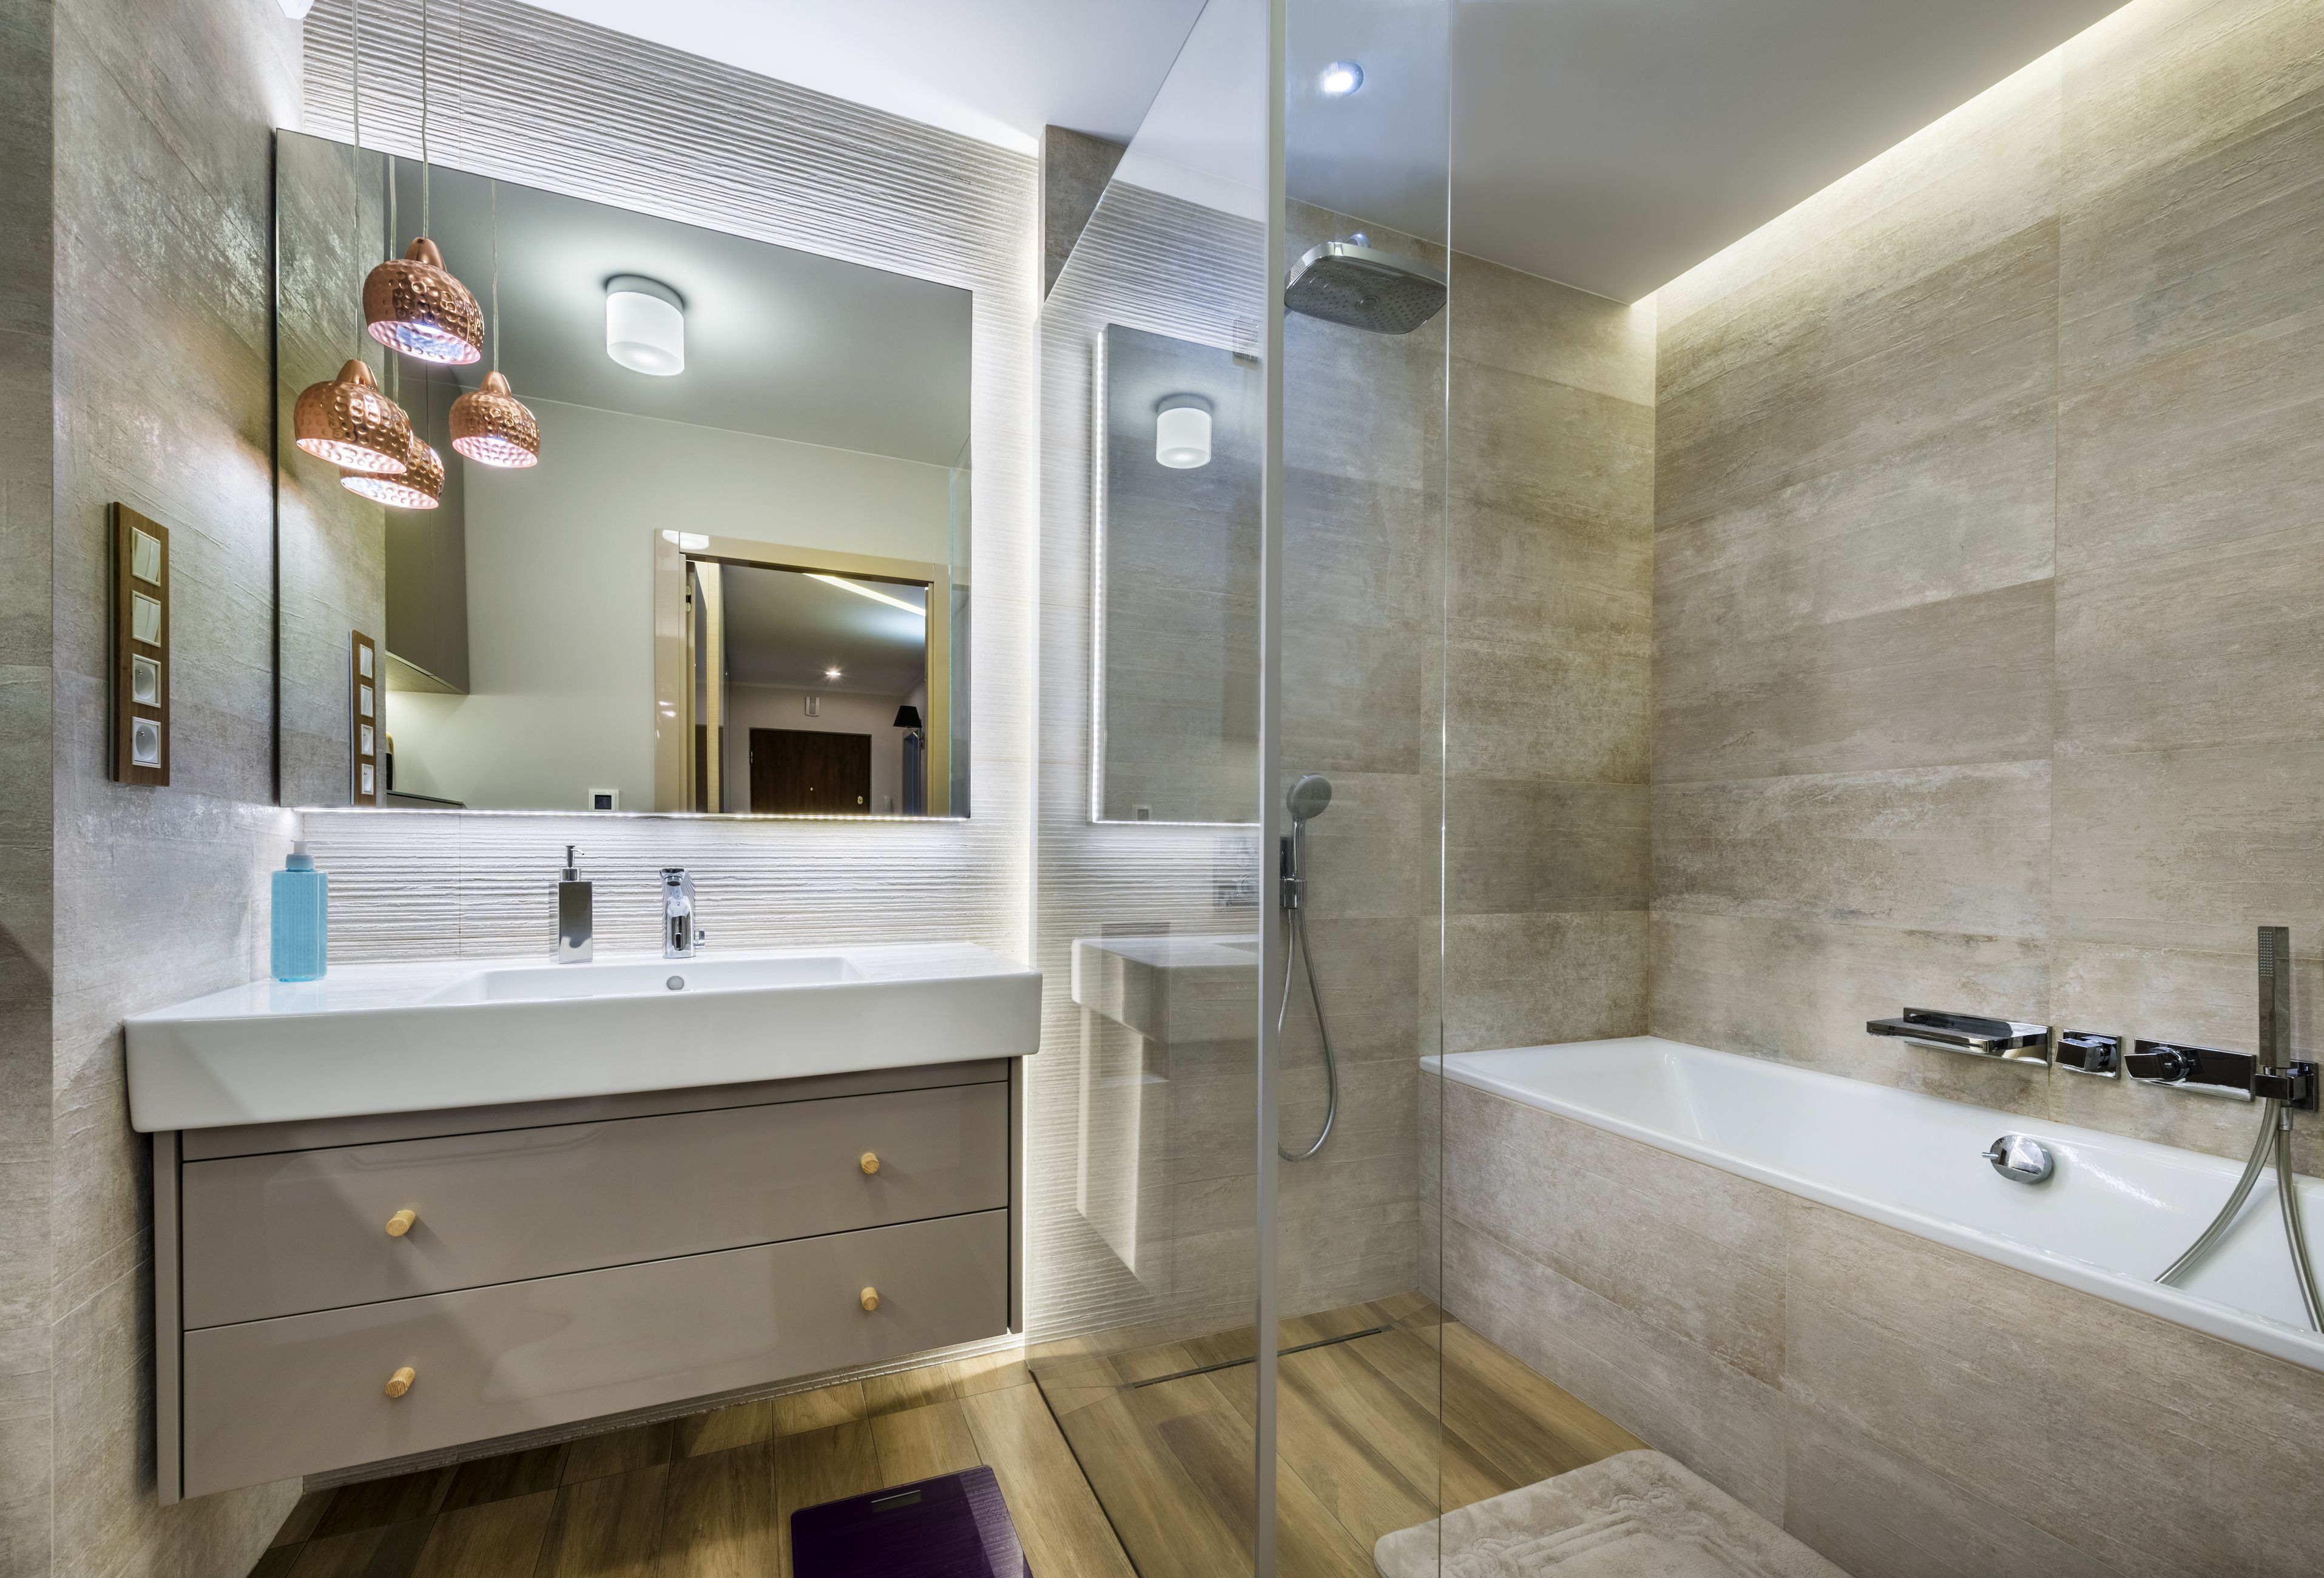 Requirements For Electrical Wiring In A Bathroom Interior Paint Ideas